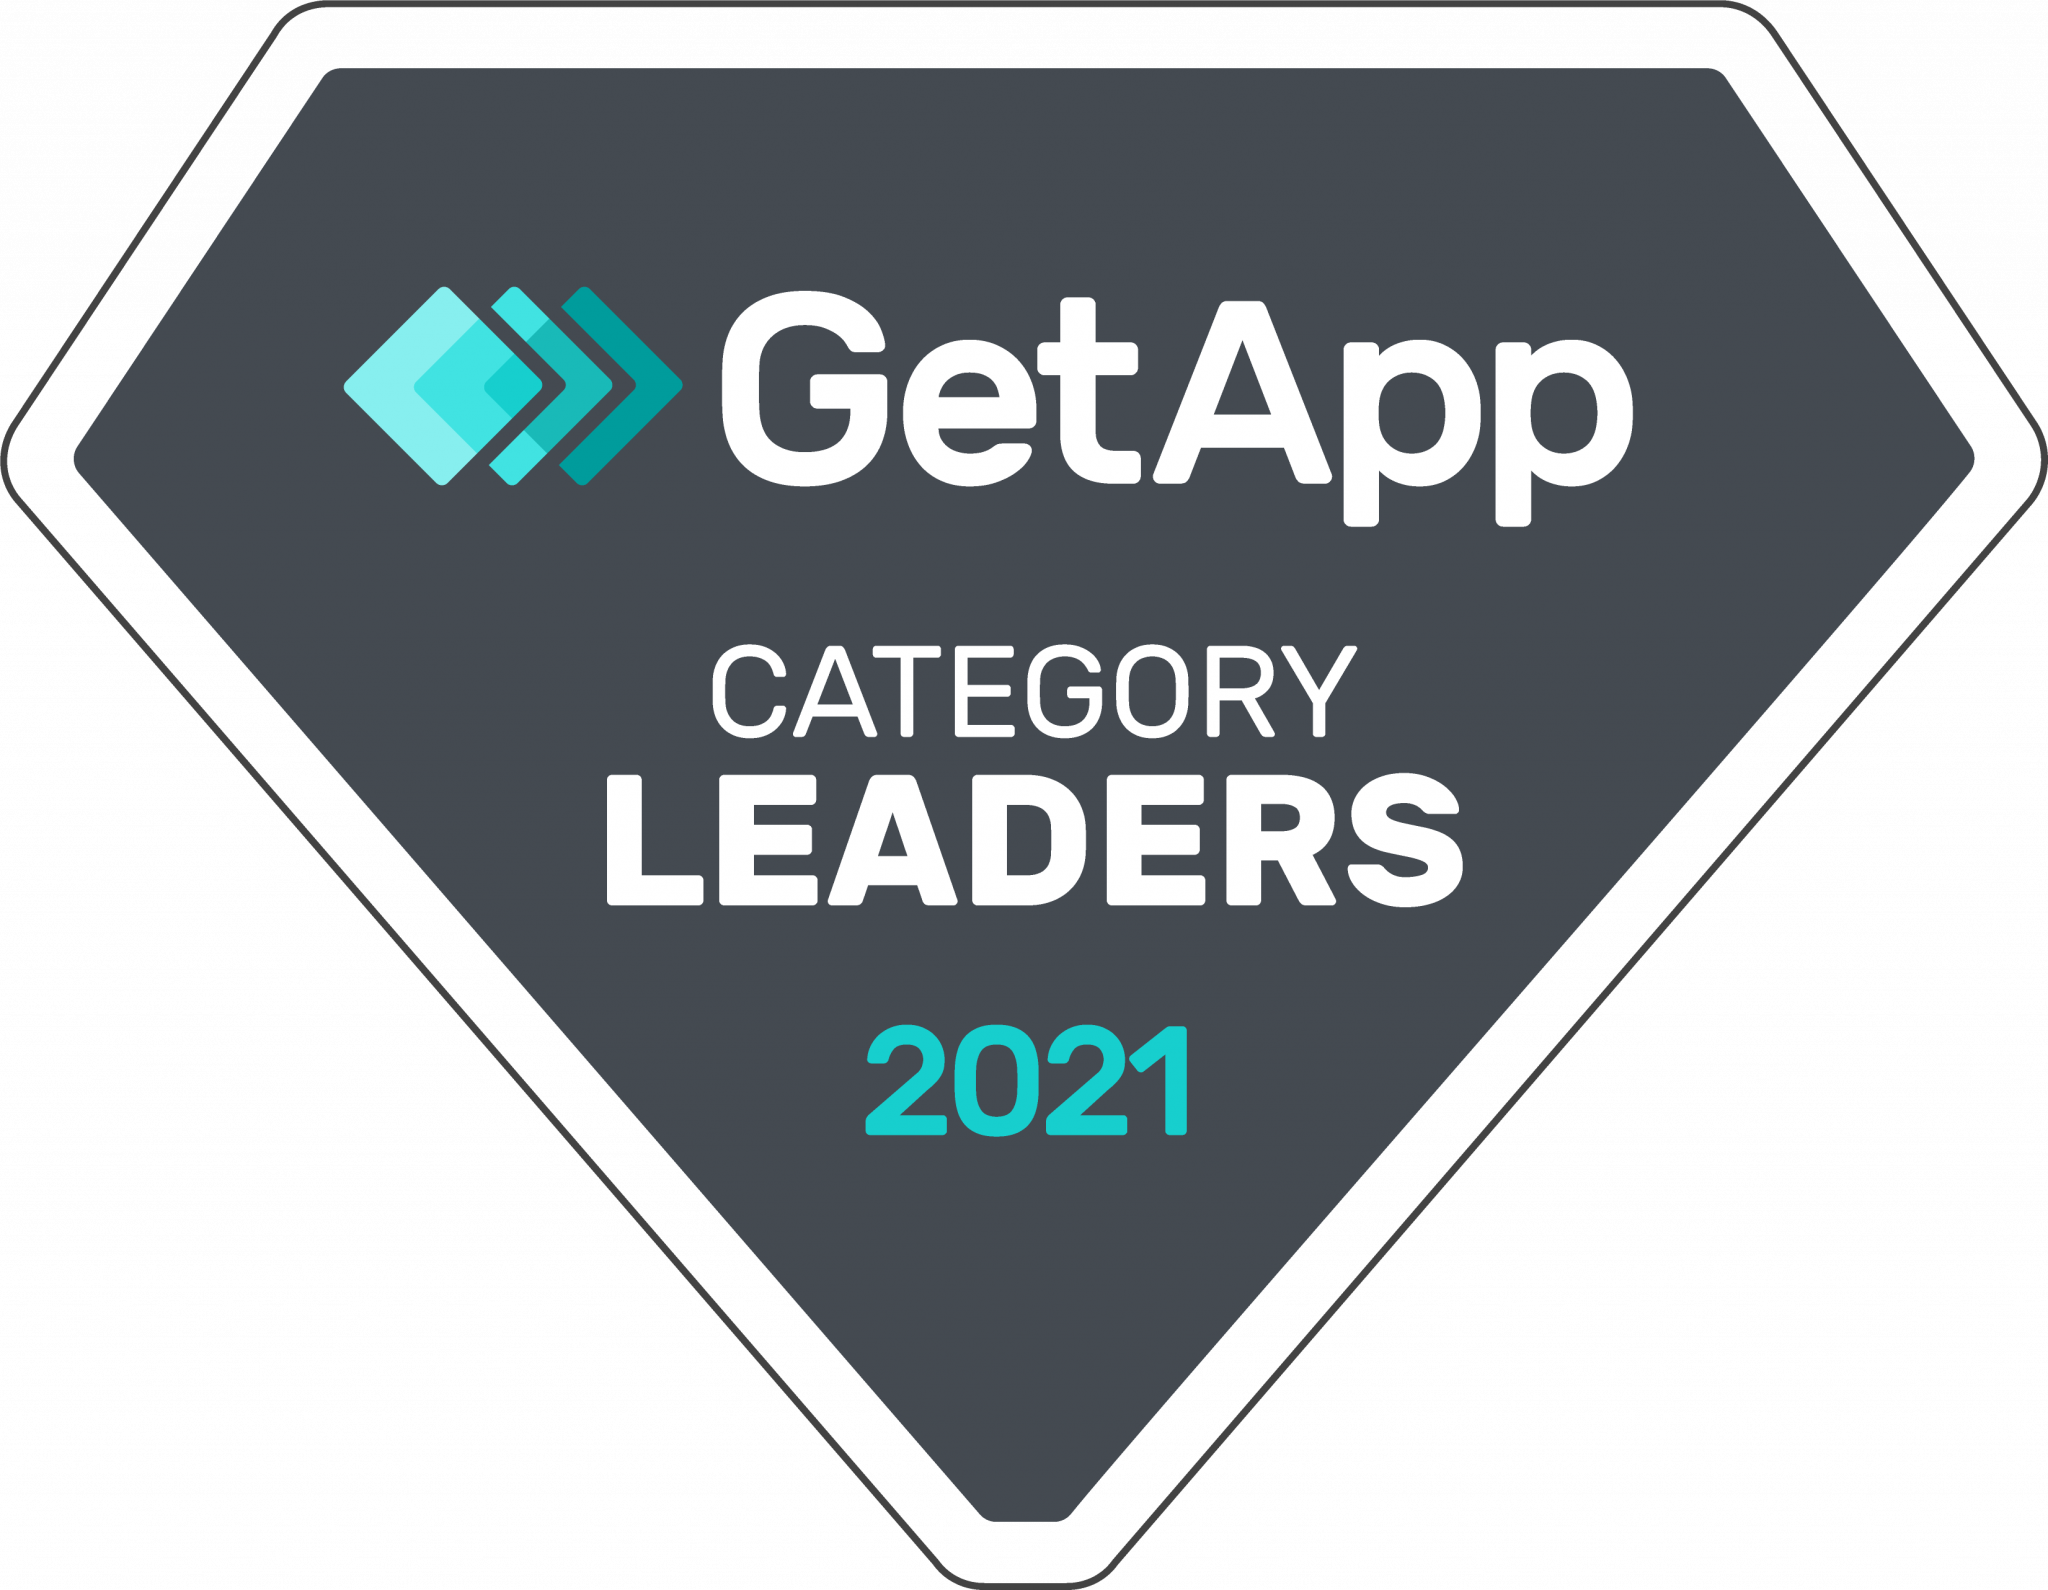 TextP2P Named as Category Leader for SMS Marketing Software by GetApp